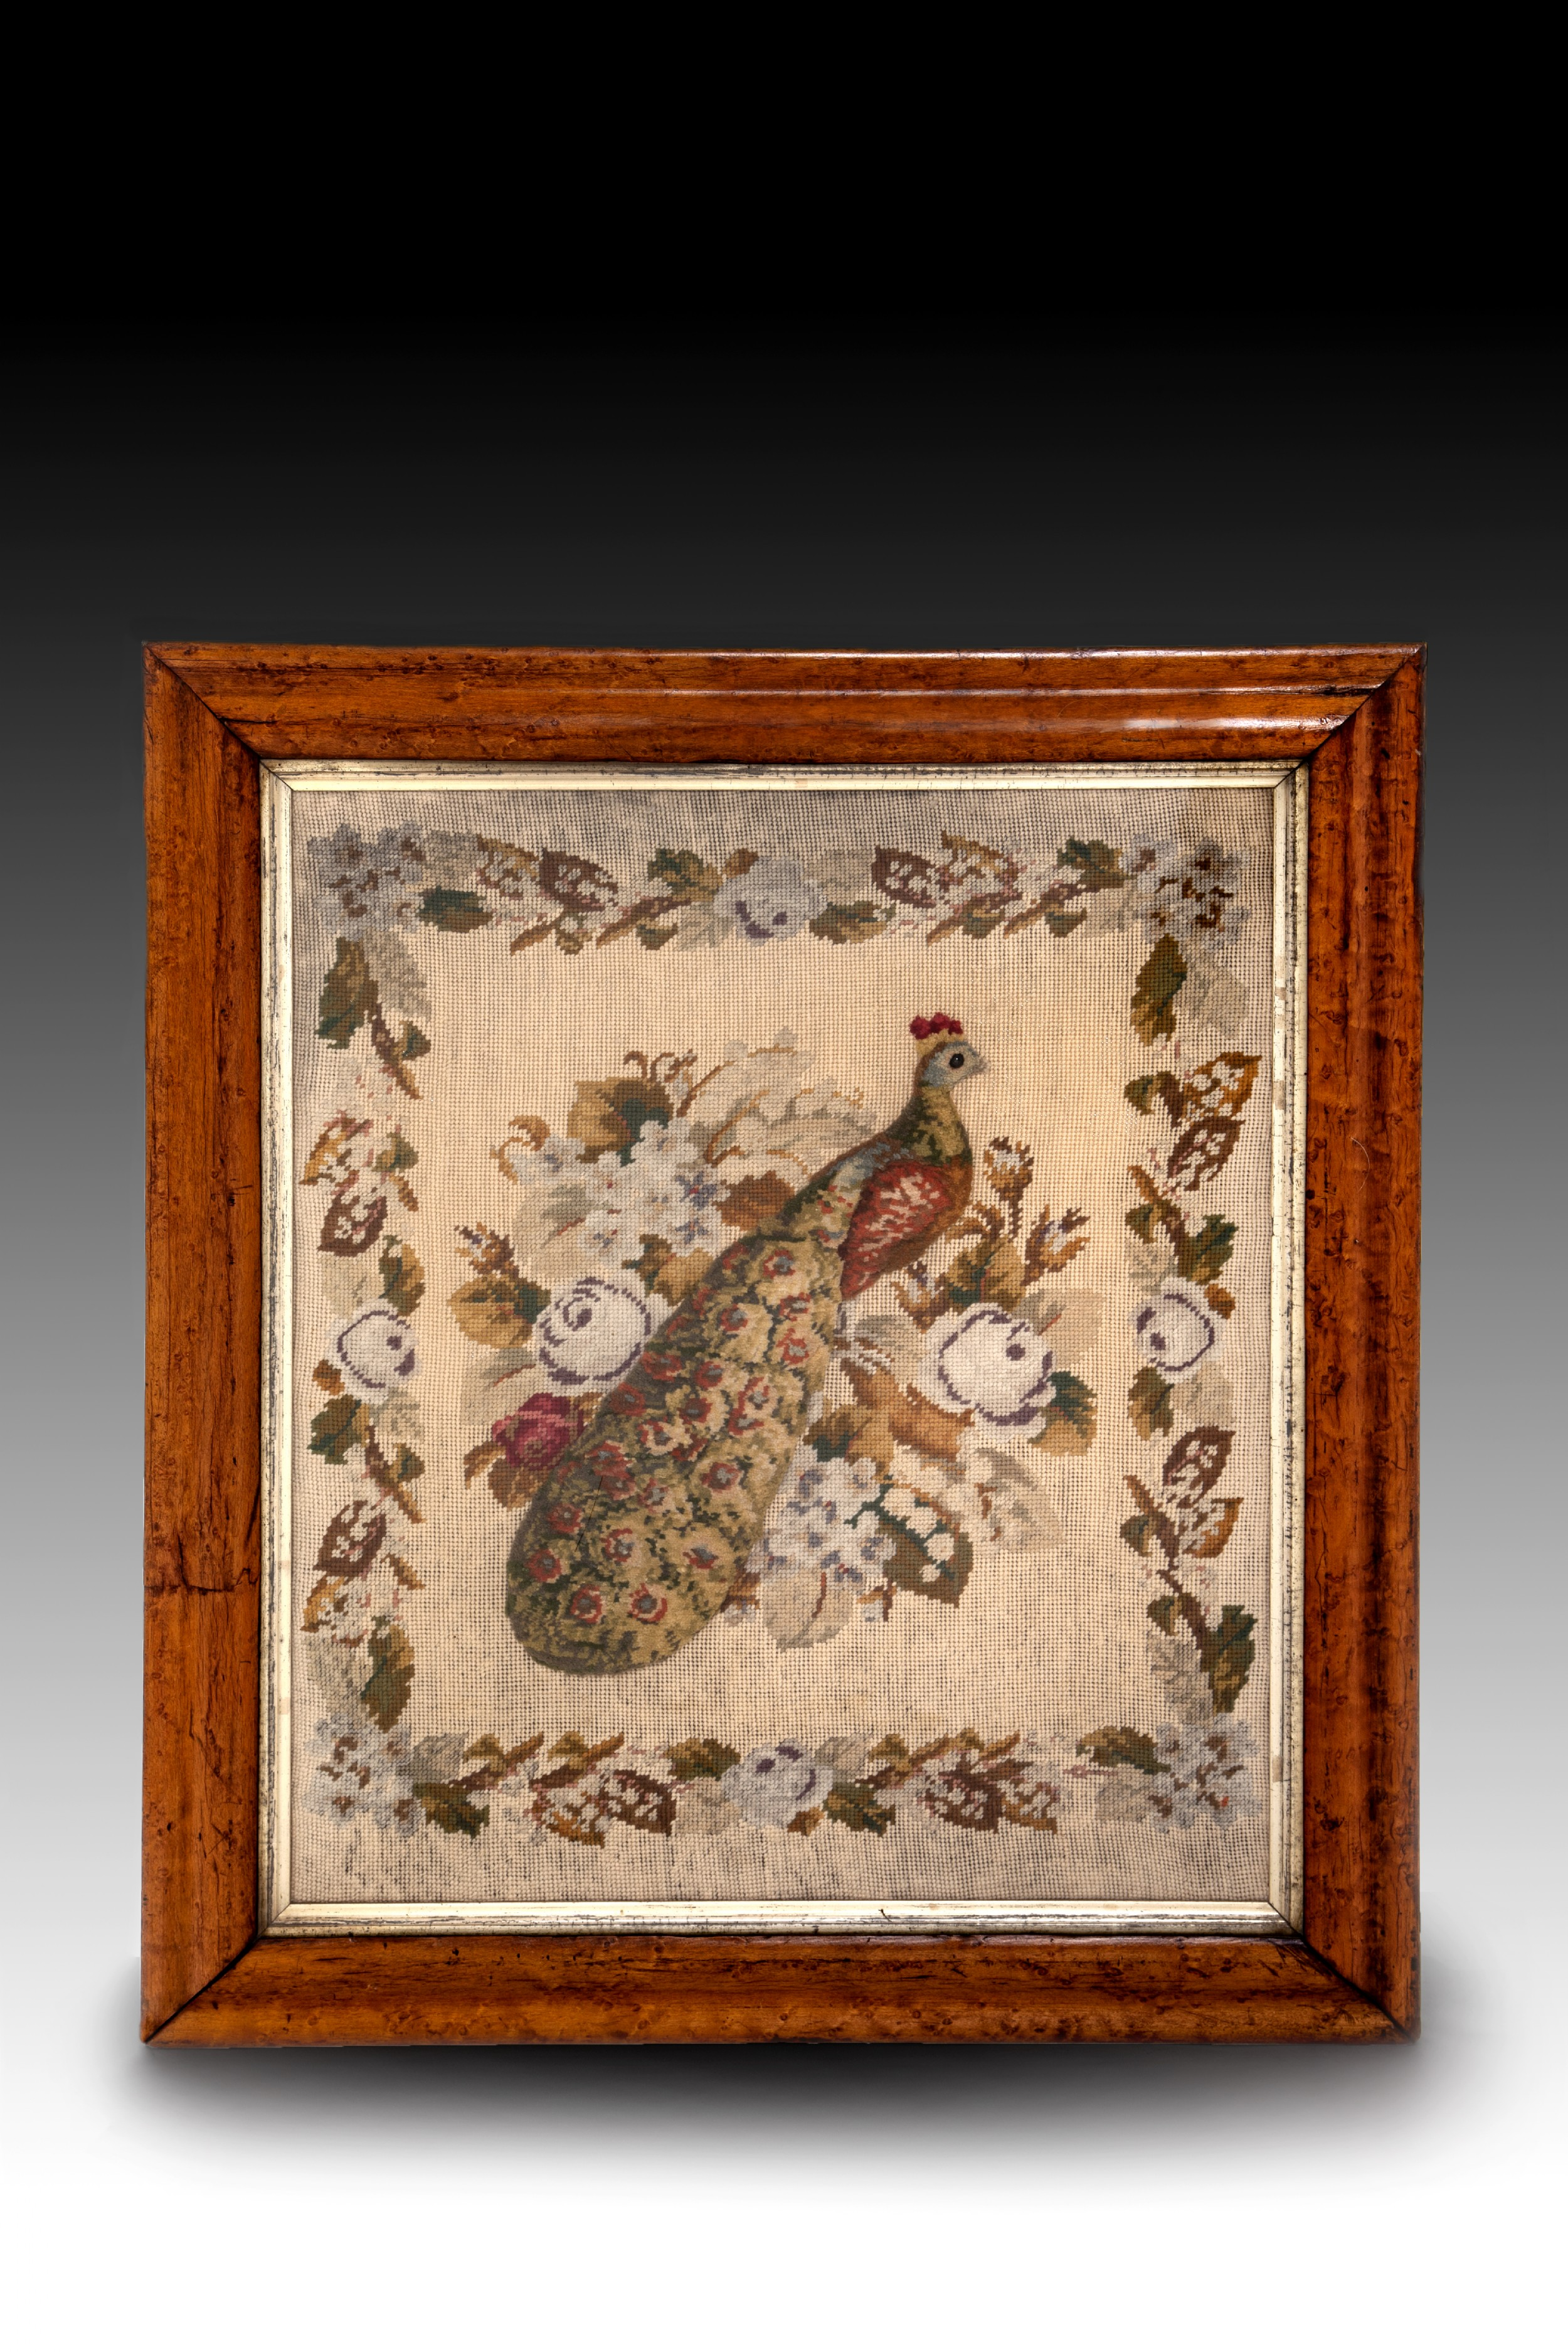 an early 19th century raised turkeywork picture of a peacock in a floral garden setting